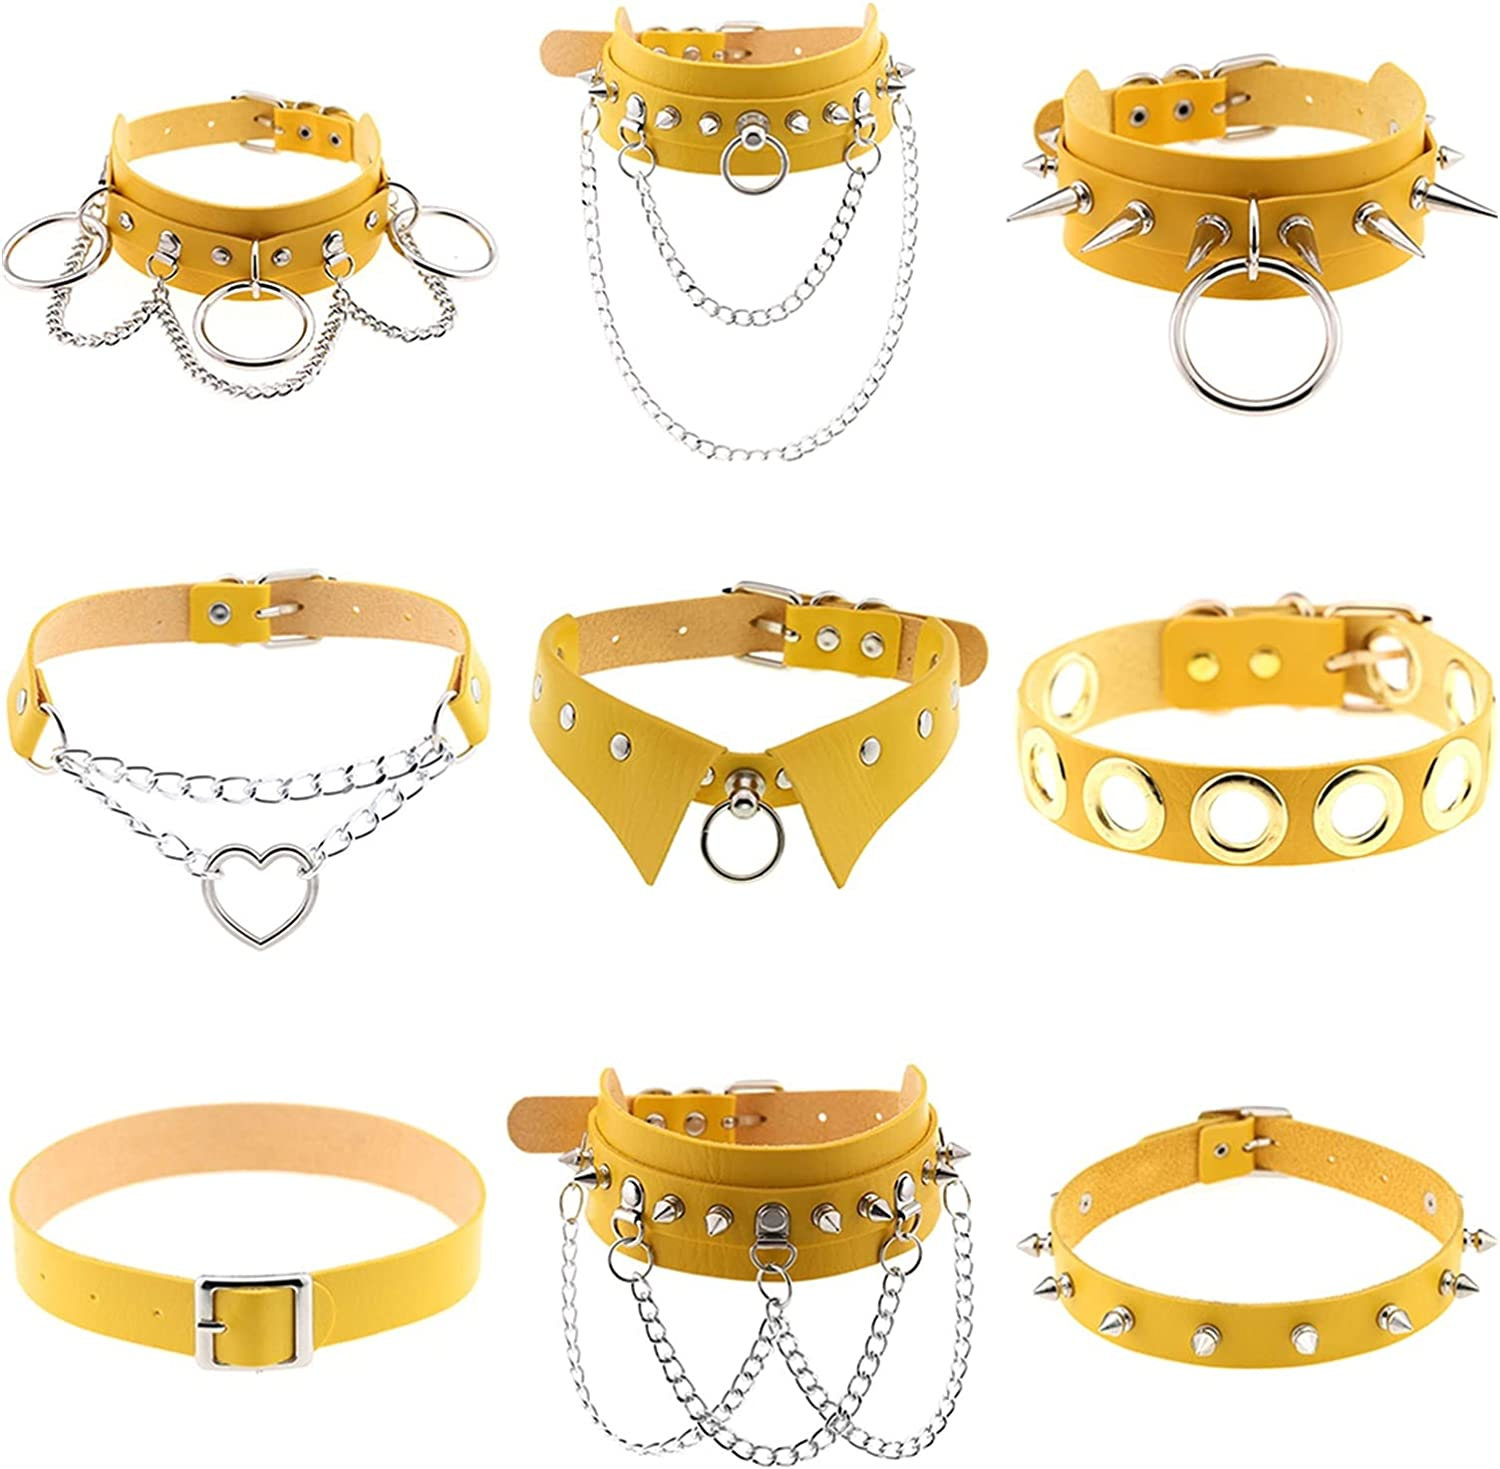 Harajuku Love-Shaped Choker Necklaces for Women Men Fashion Leather Sexy Collar Cool Neck Clavicle Chains Gothic Goth Jewelry (Metal Color : GTN06-YY)